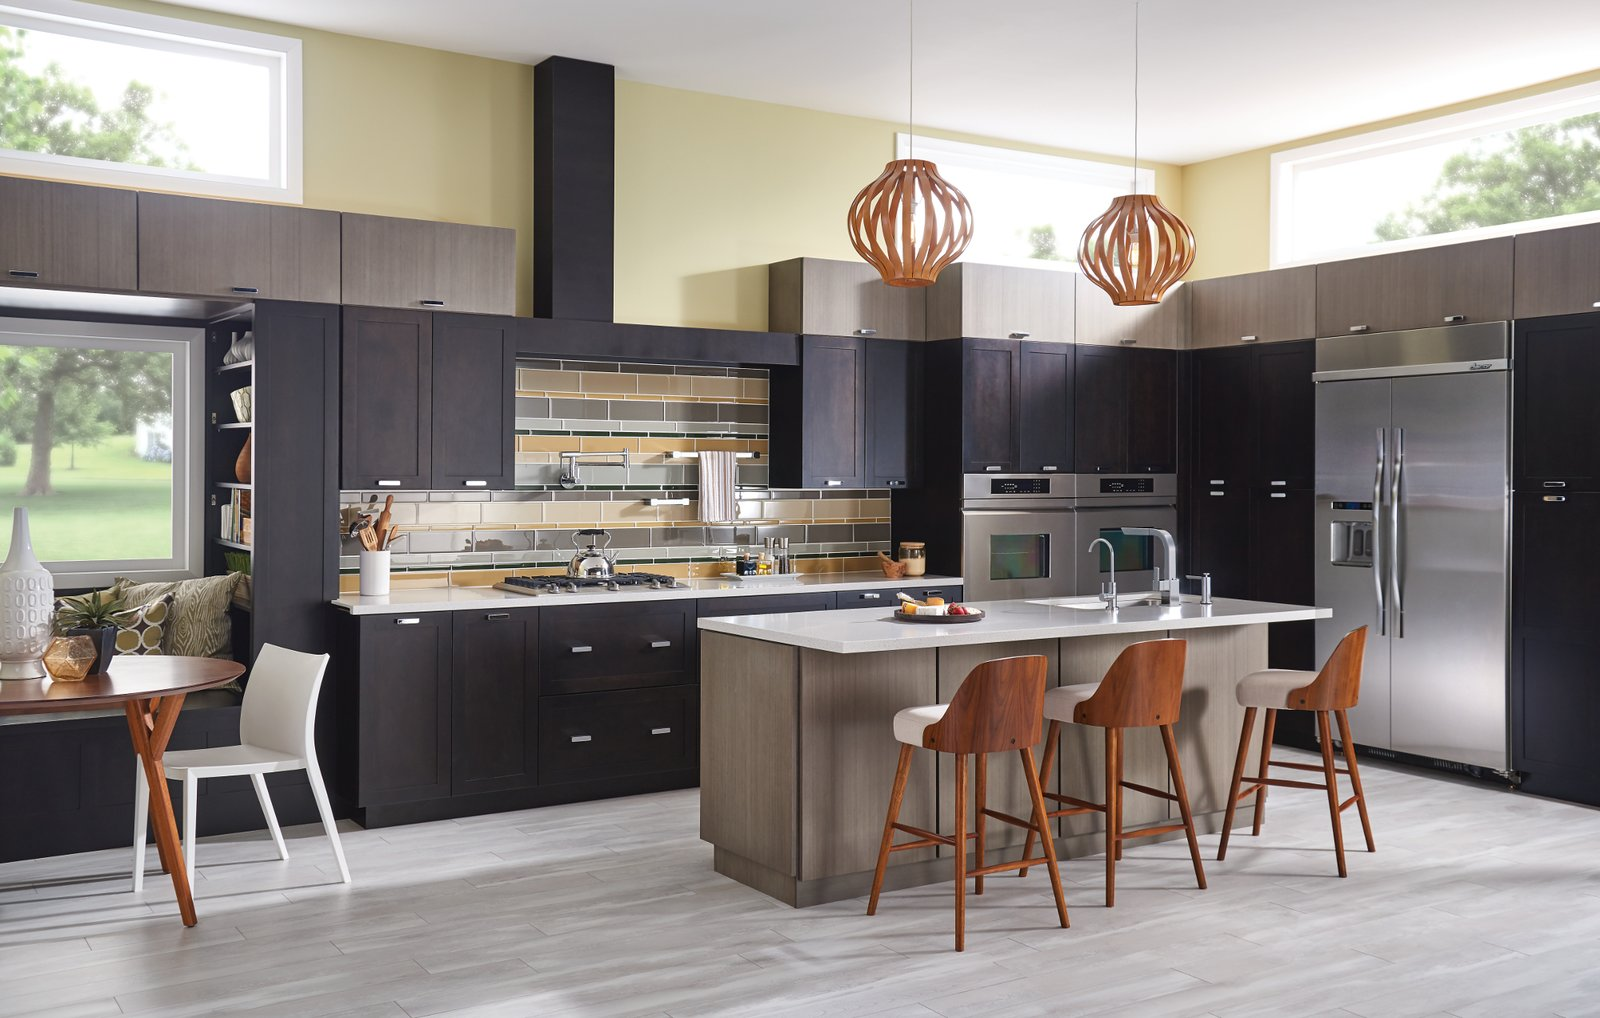 Photo 7 of 8 in How to Add a Modern Twist to Any Kitchen Style